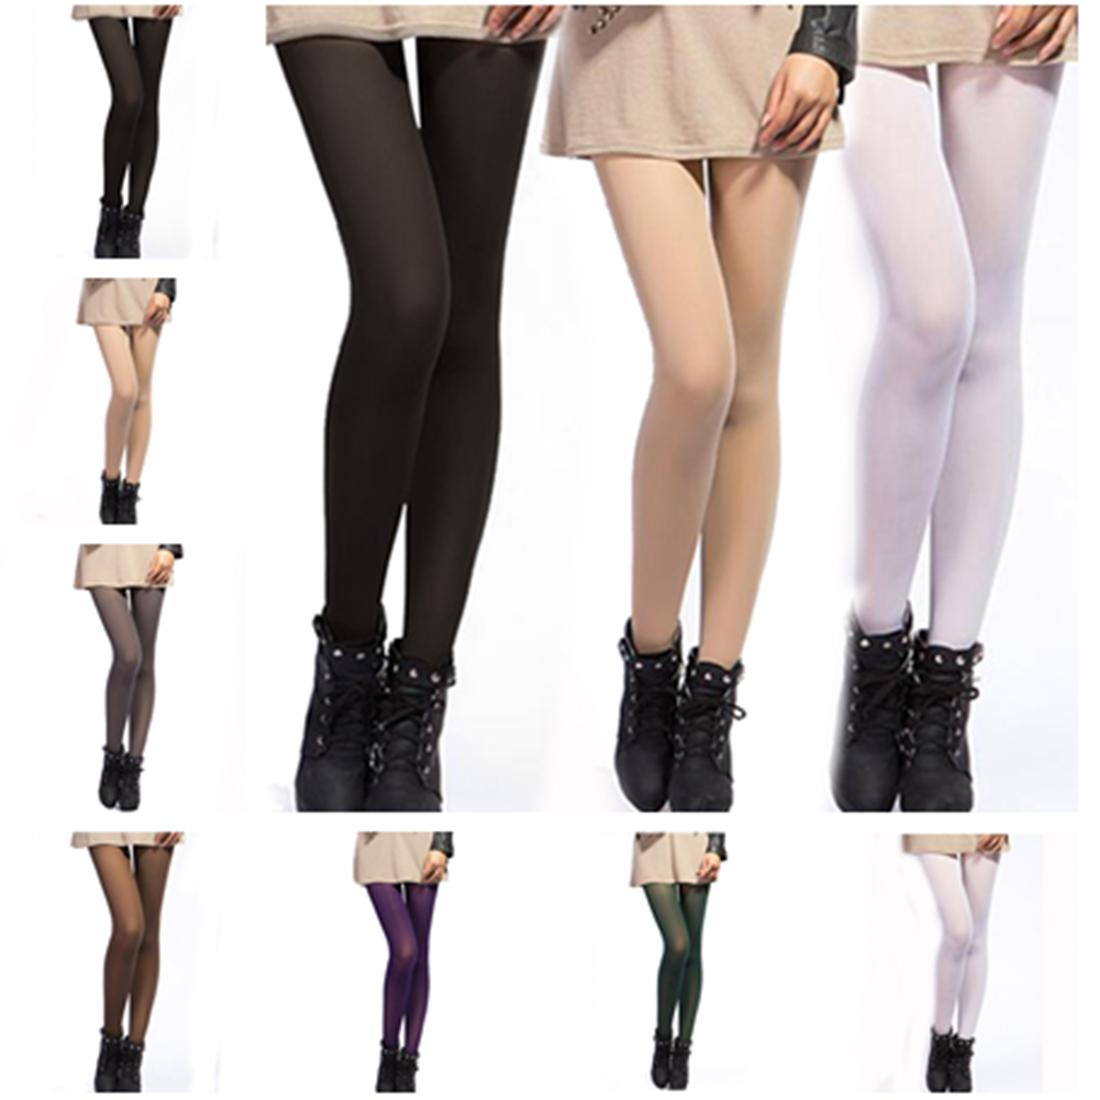 187728479d5 2019 Hot Sale Woman Velvet 100D Pantyhose Multi Colour Tights Women For  Spring Autumn Winter From Piterr